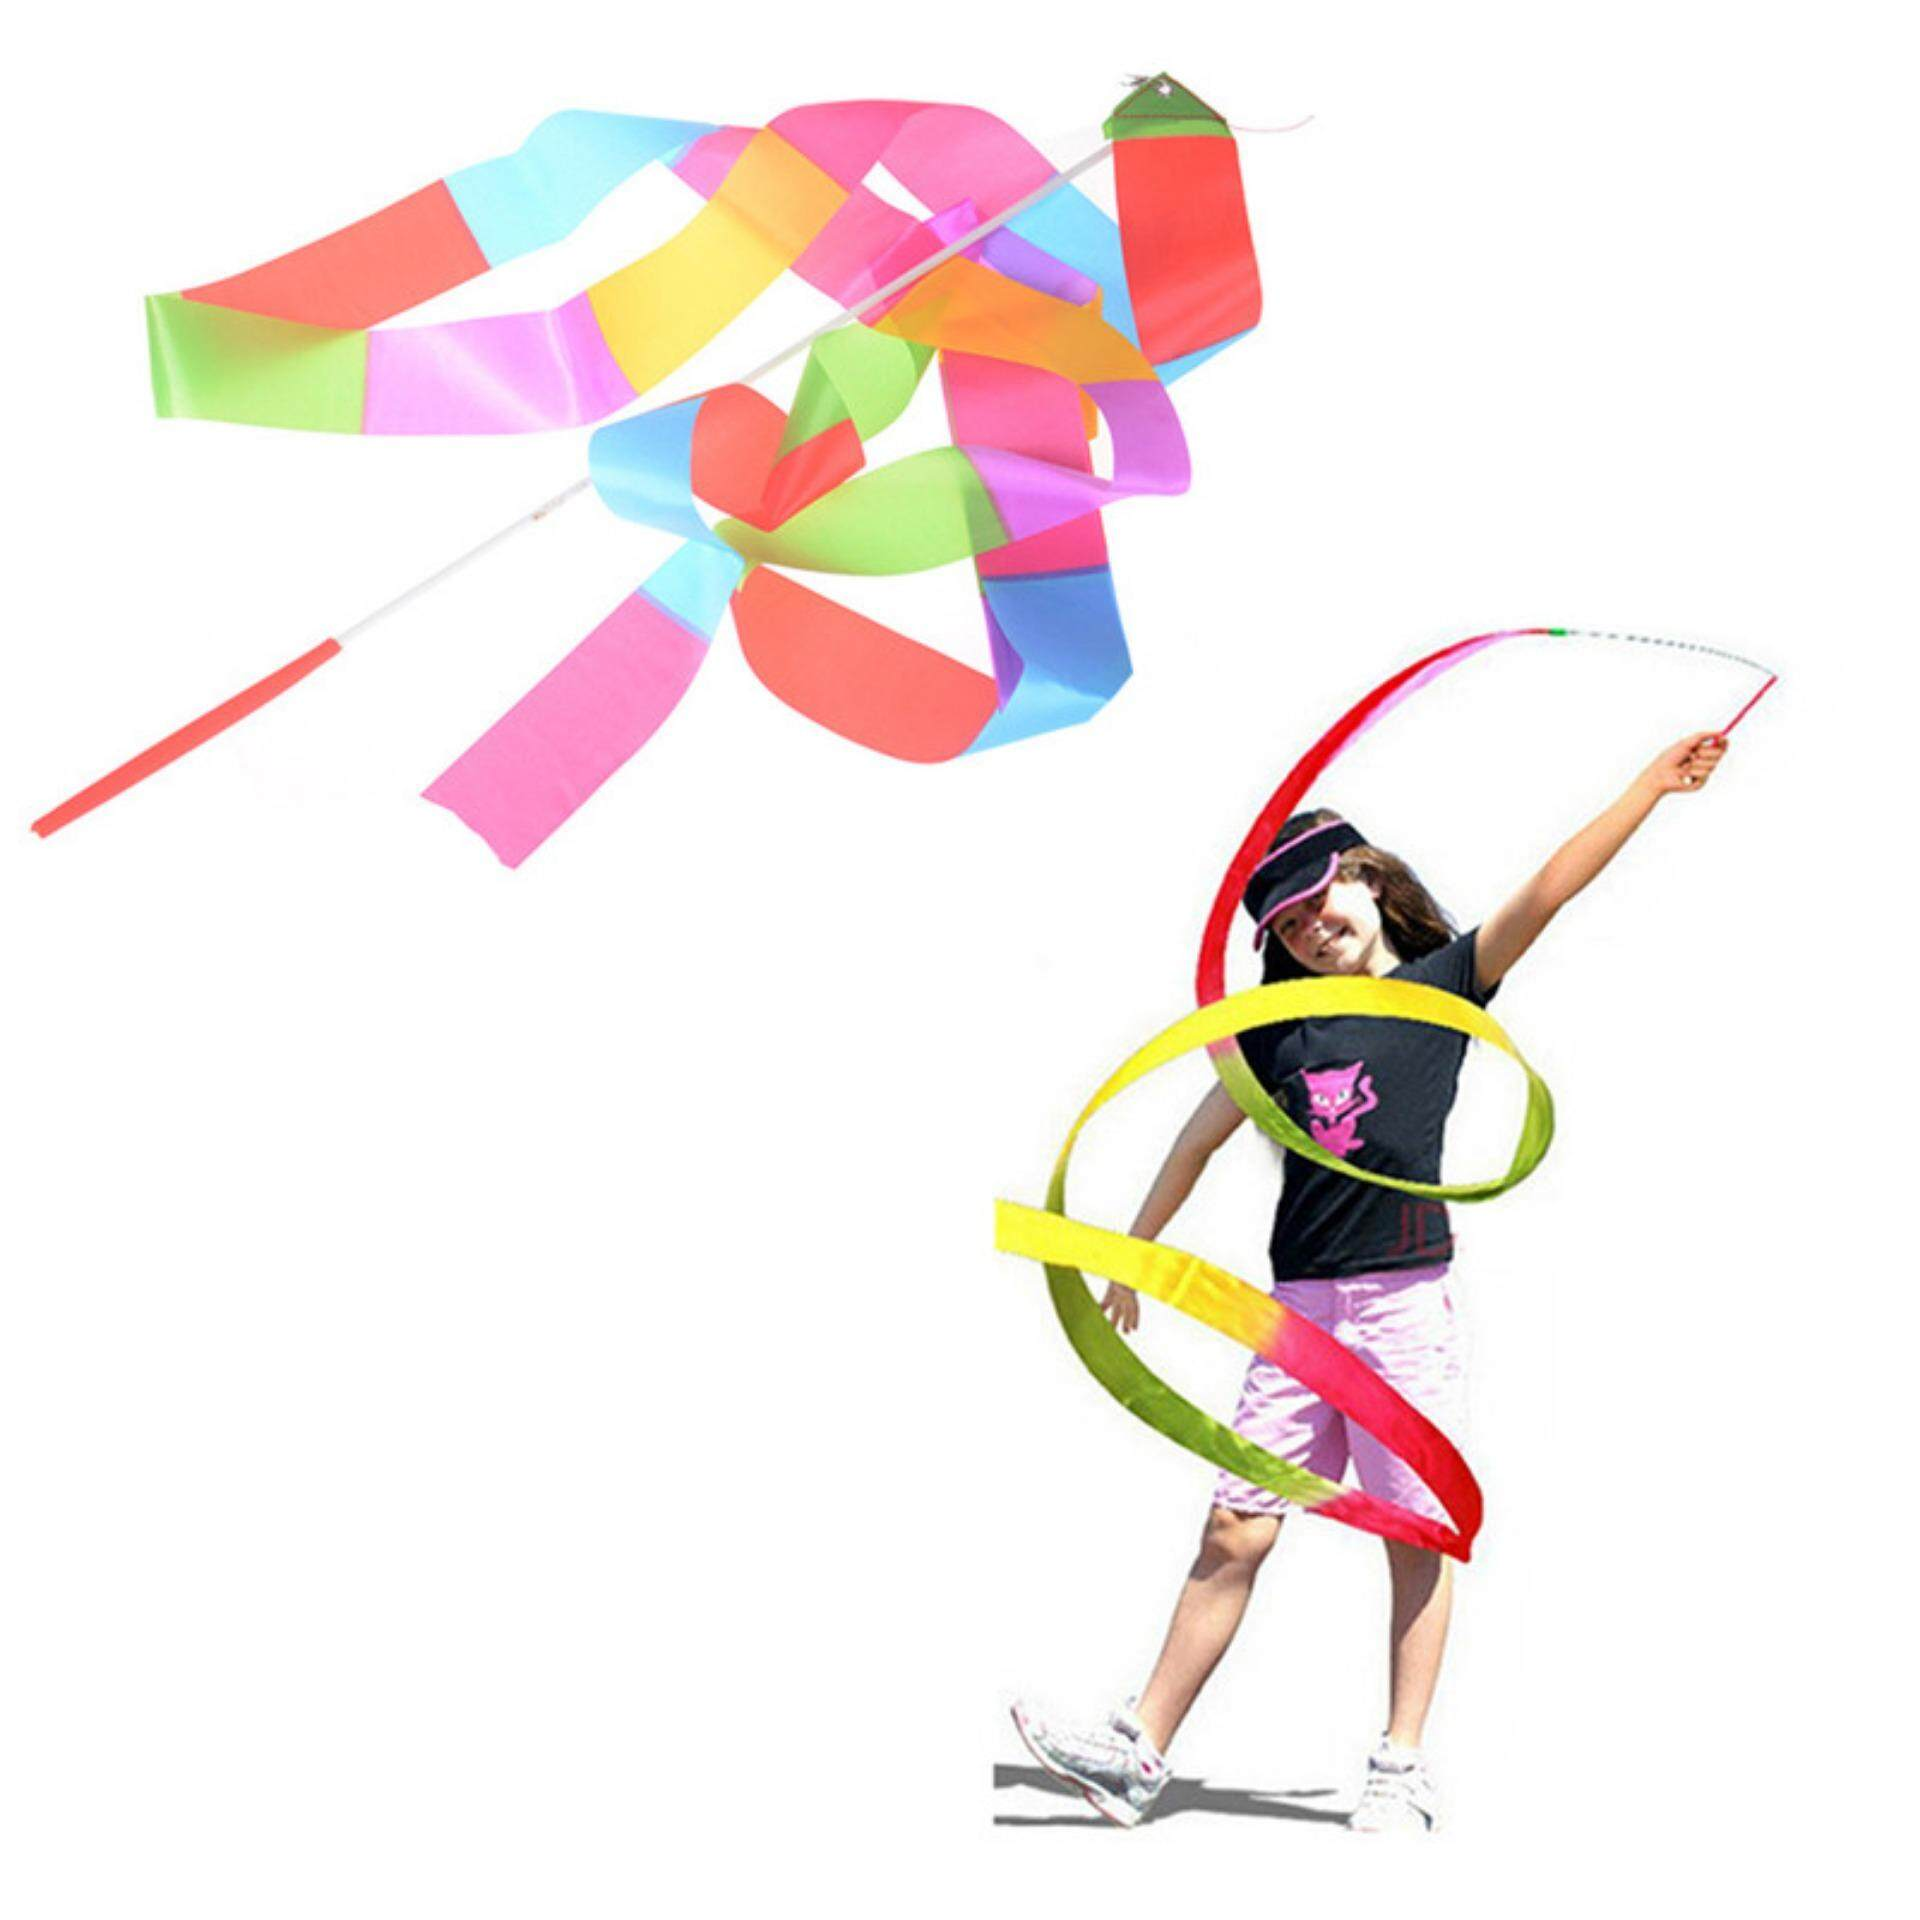 Fashion Colorful 4m Ribbon Gymnastics Dance Dancer Toy Kid Outdoor Sport Toy By Civilian Princess.